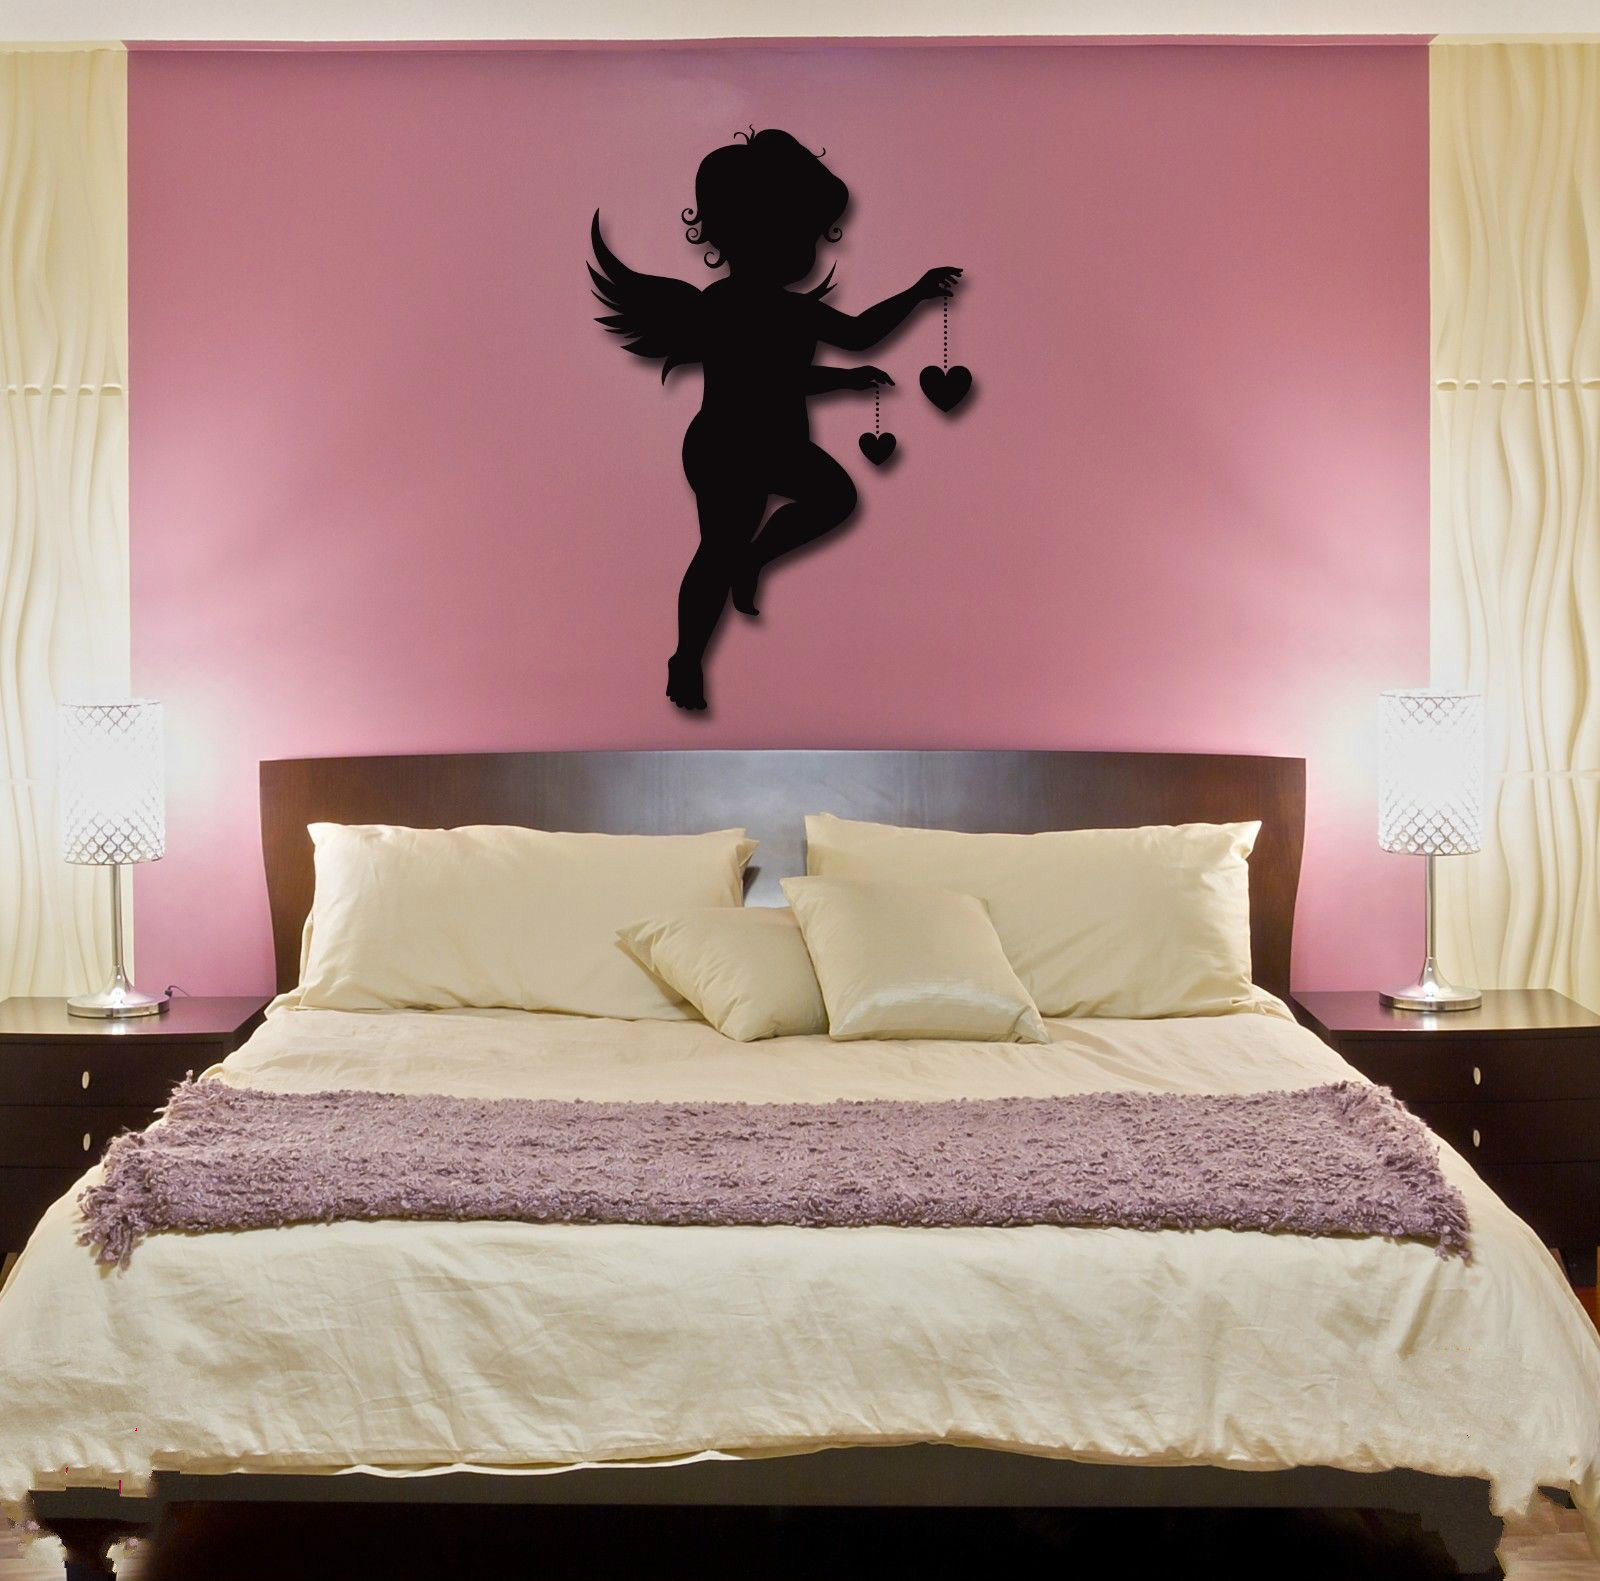 new home Wall Stickers Vinyl Decal Angel Baby Kids Romantic Decor For Bedroom free shipping(China (Mainland))